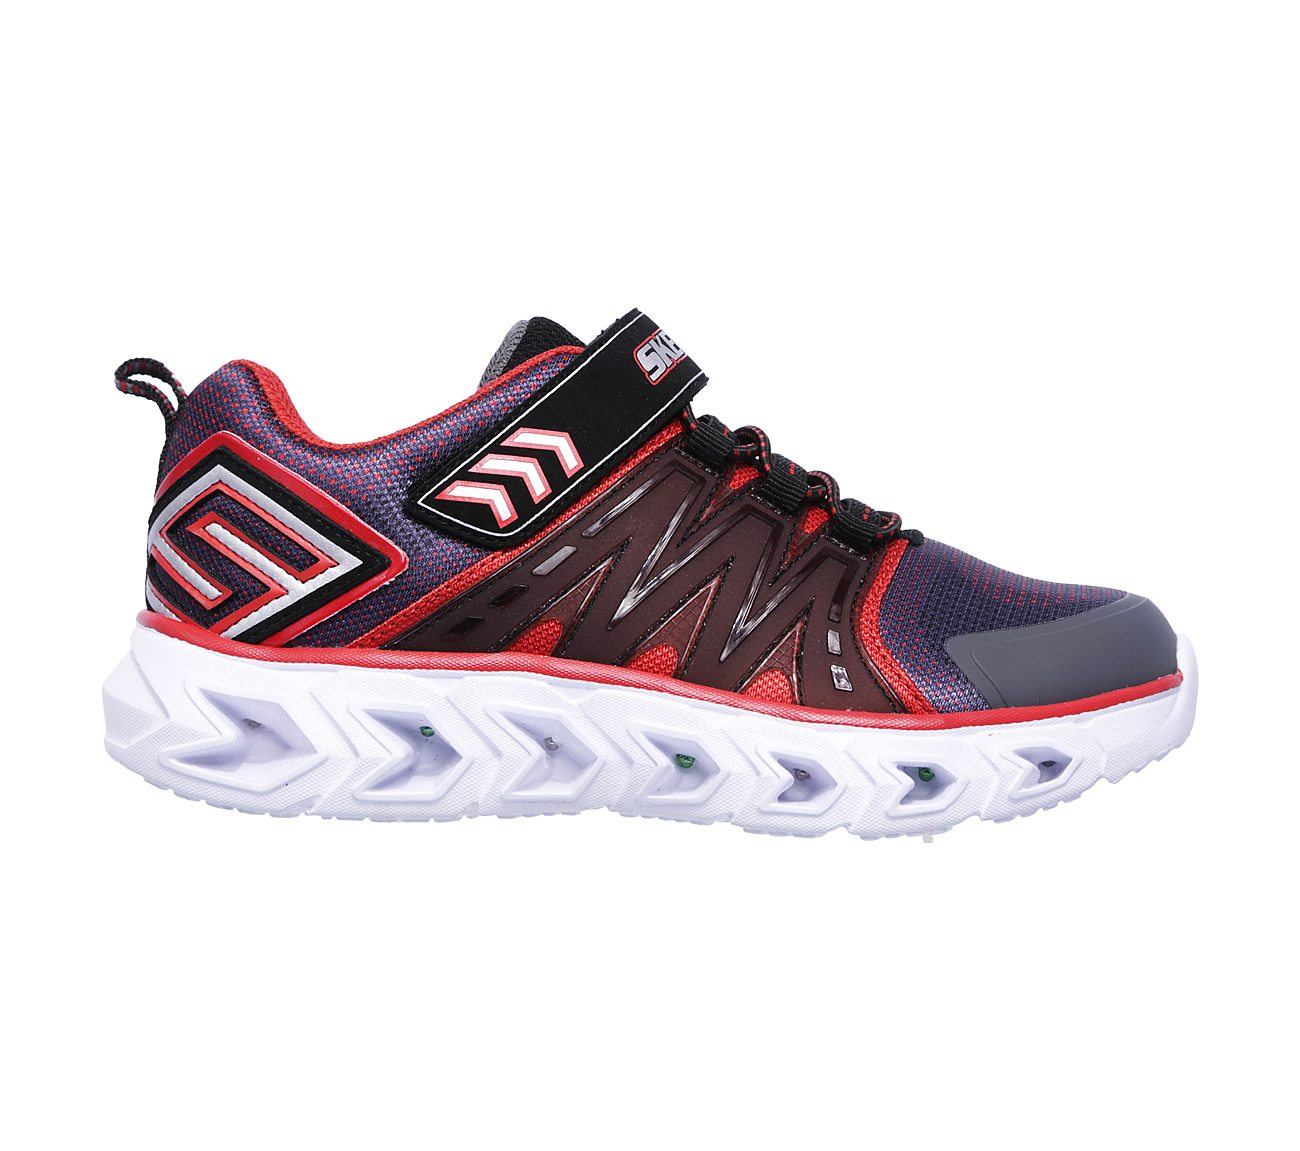 Skechers Charcoal/Red Hypno-Flash